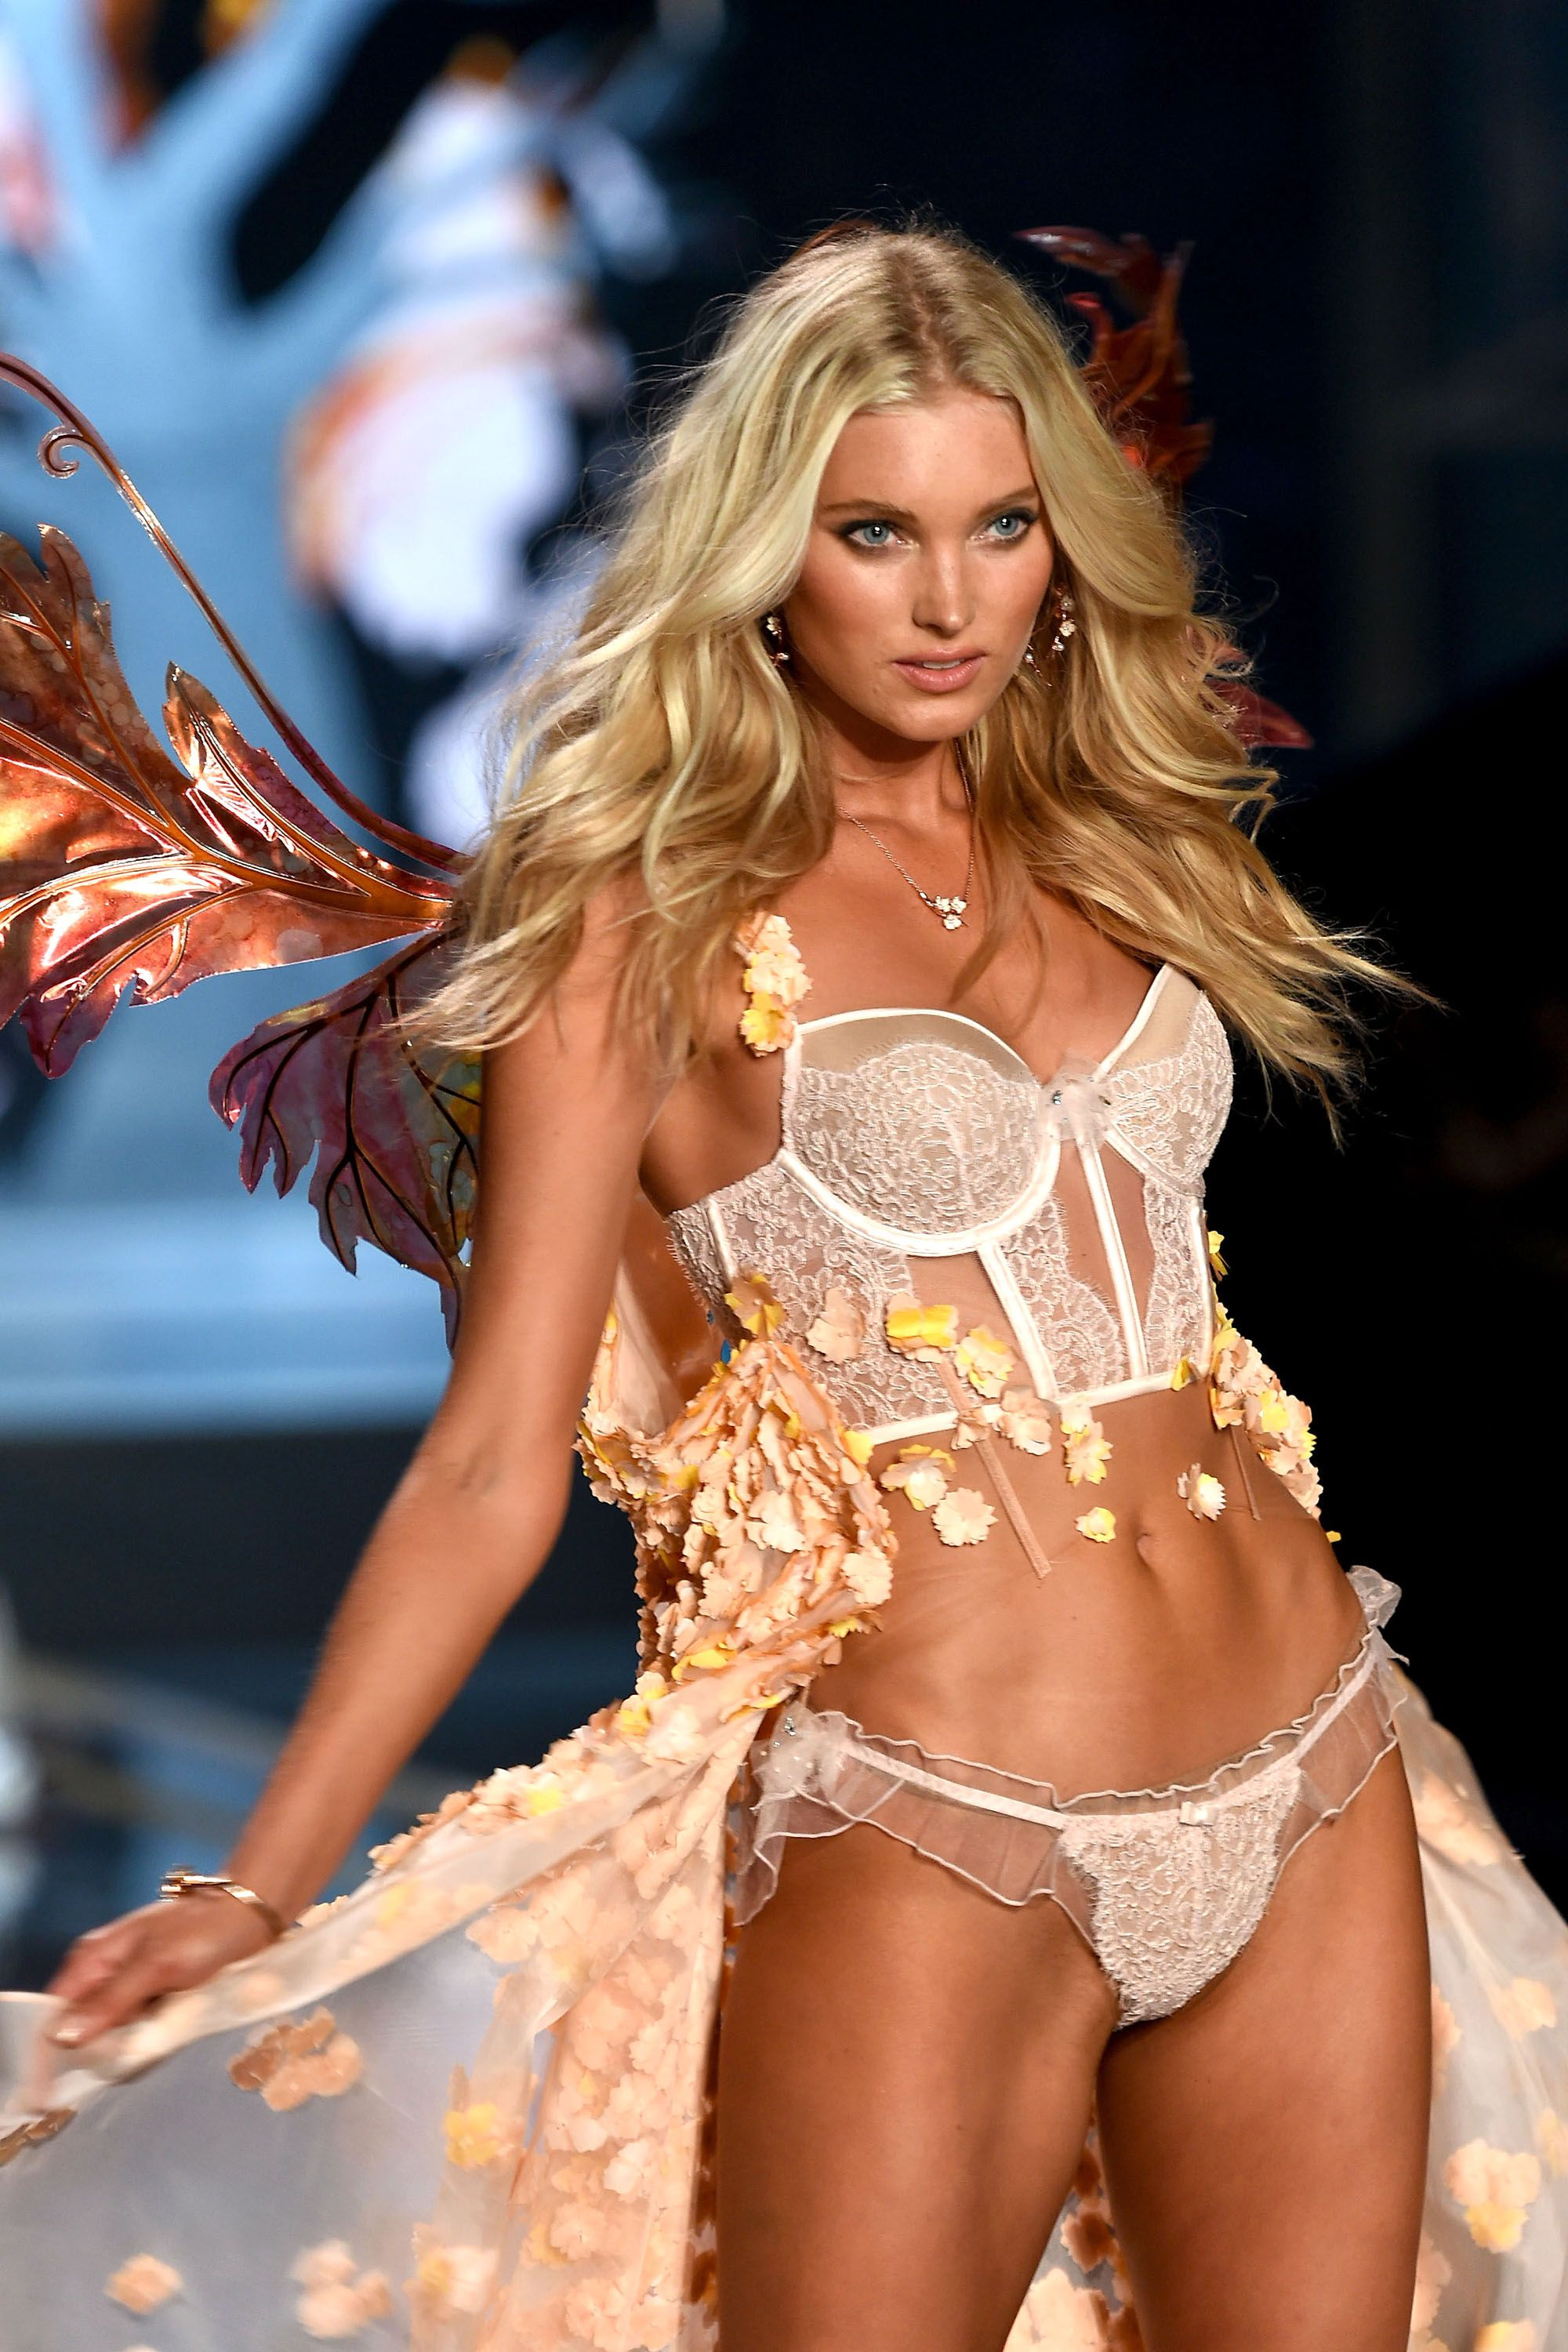 LONDON, ENGLAND - DECEMBER 02:  Model Elsa Hosk  walks the runway during the 2014 Victoria's Secret Fashion Show at Earl's Court Exhibition Centre on December 2, 2014 in London, England.  (Photo by Dimitrios Kambouris/Getty Images for Victoria's Secret)